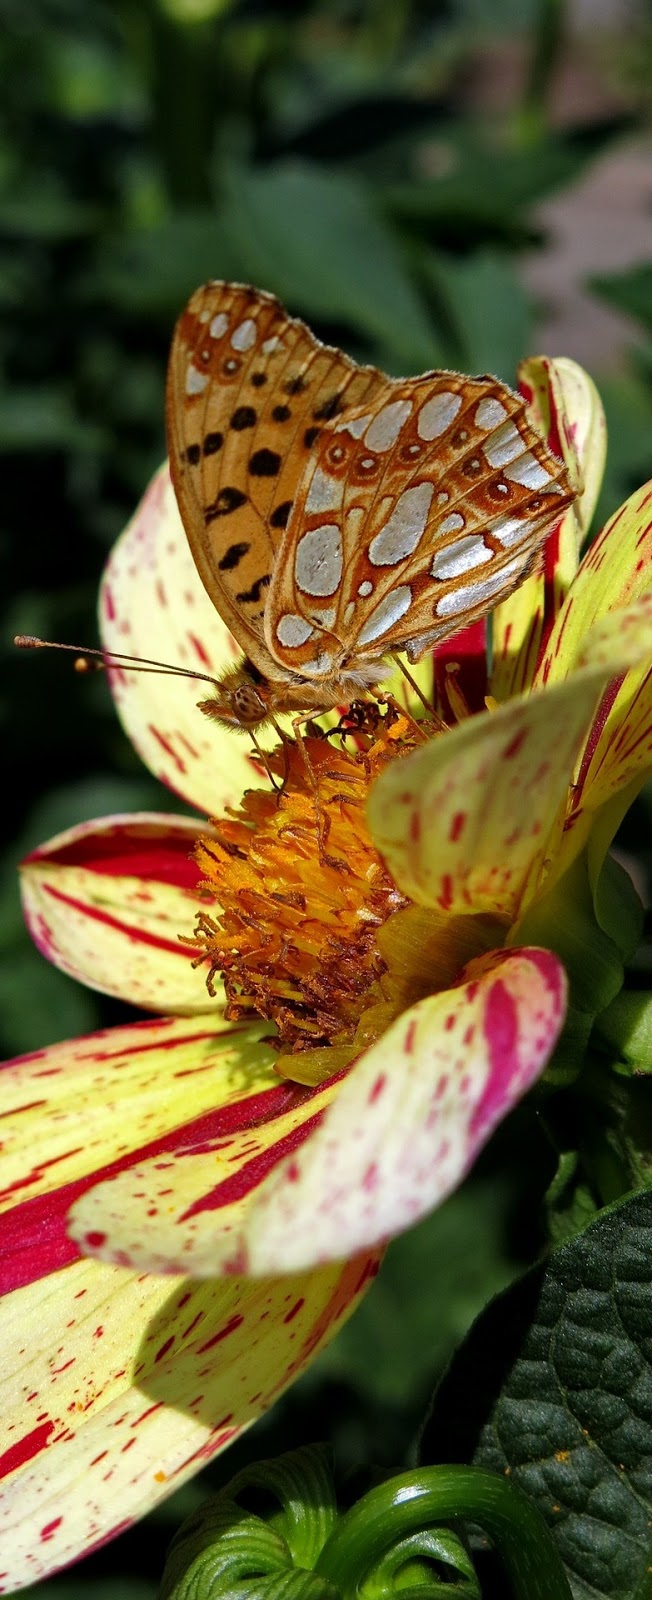 Butterfly on a dahlia flower.